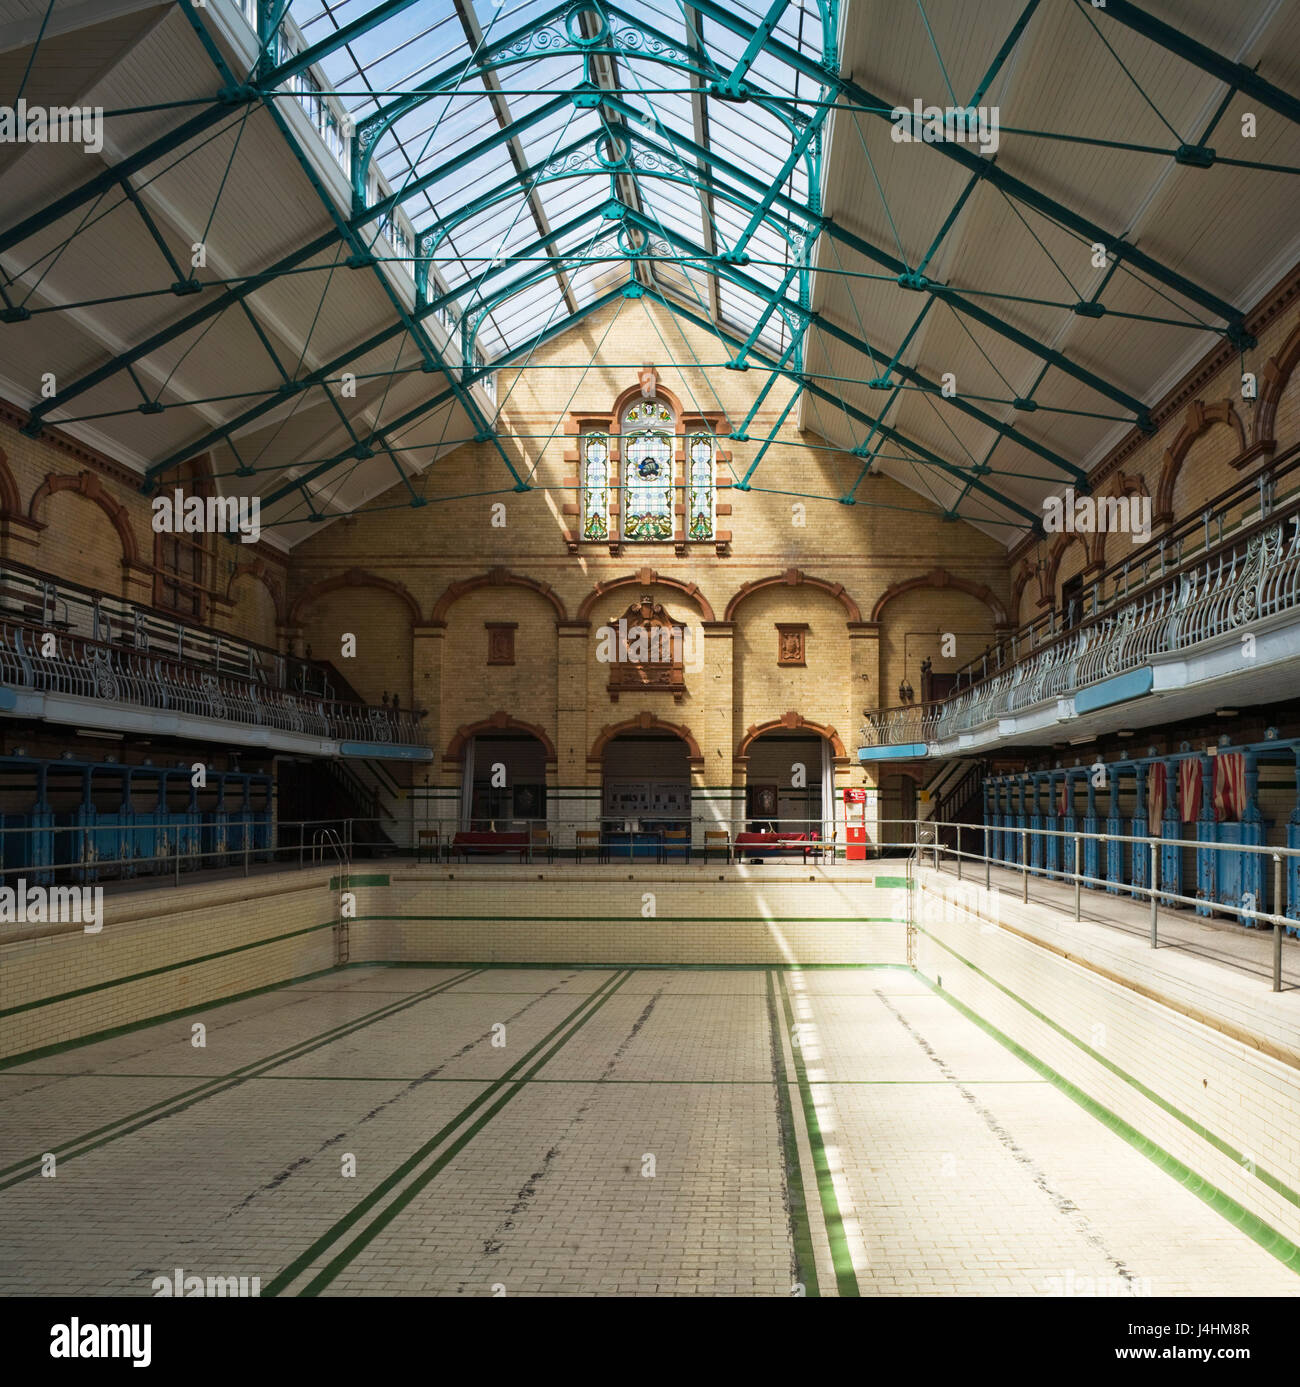 View through the swimming hall with pool before refurbishment. Victoria Baths, Manchester, United Kingdom. Architect: - Stock Image